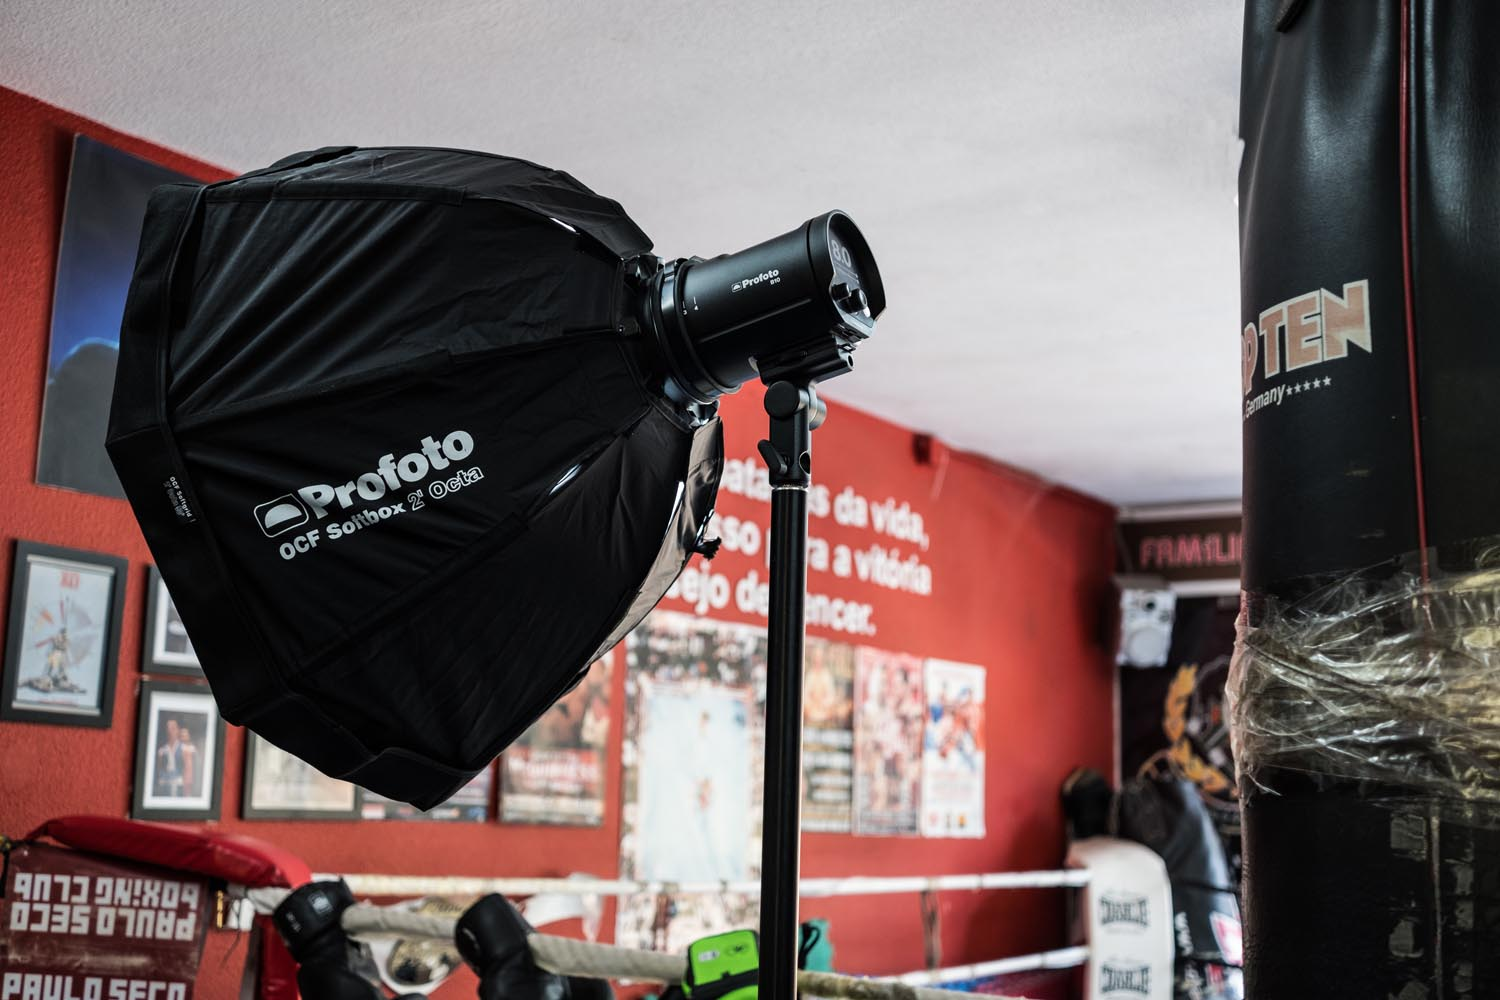 The B10 with a Profoto OCF 2' Octabox, provided by Innovafoto